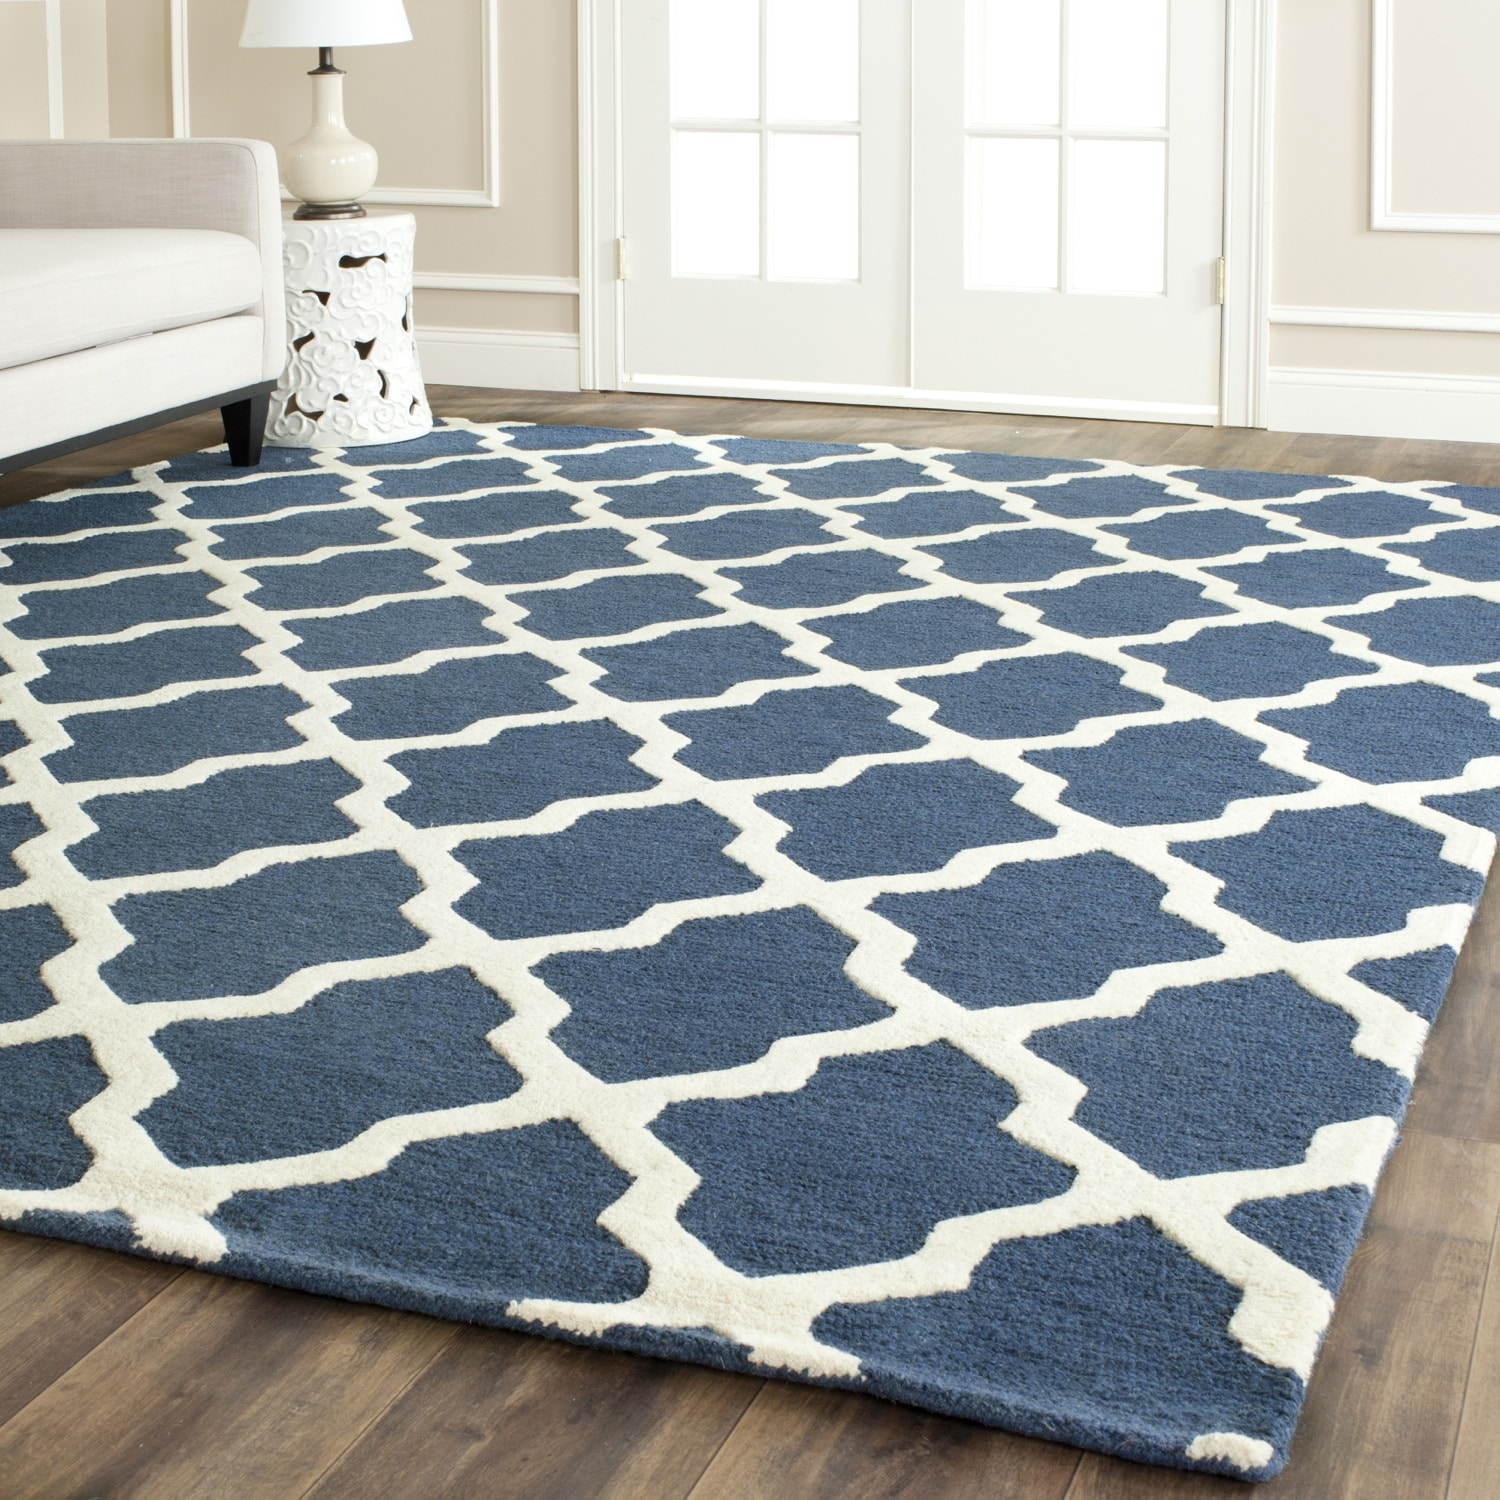 Safavieh Handmade Moroccan Cambridge Navy Blue Ivory Wool